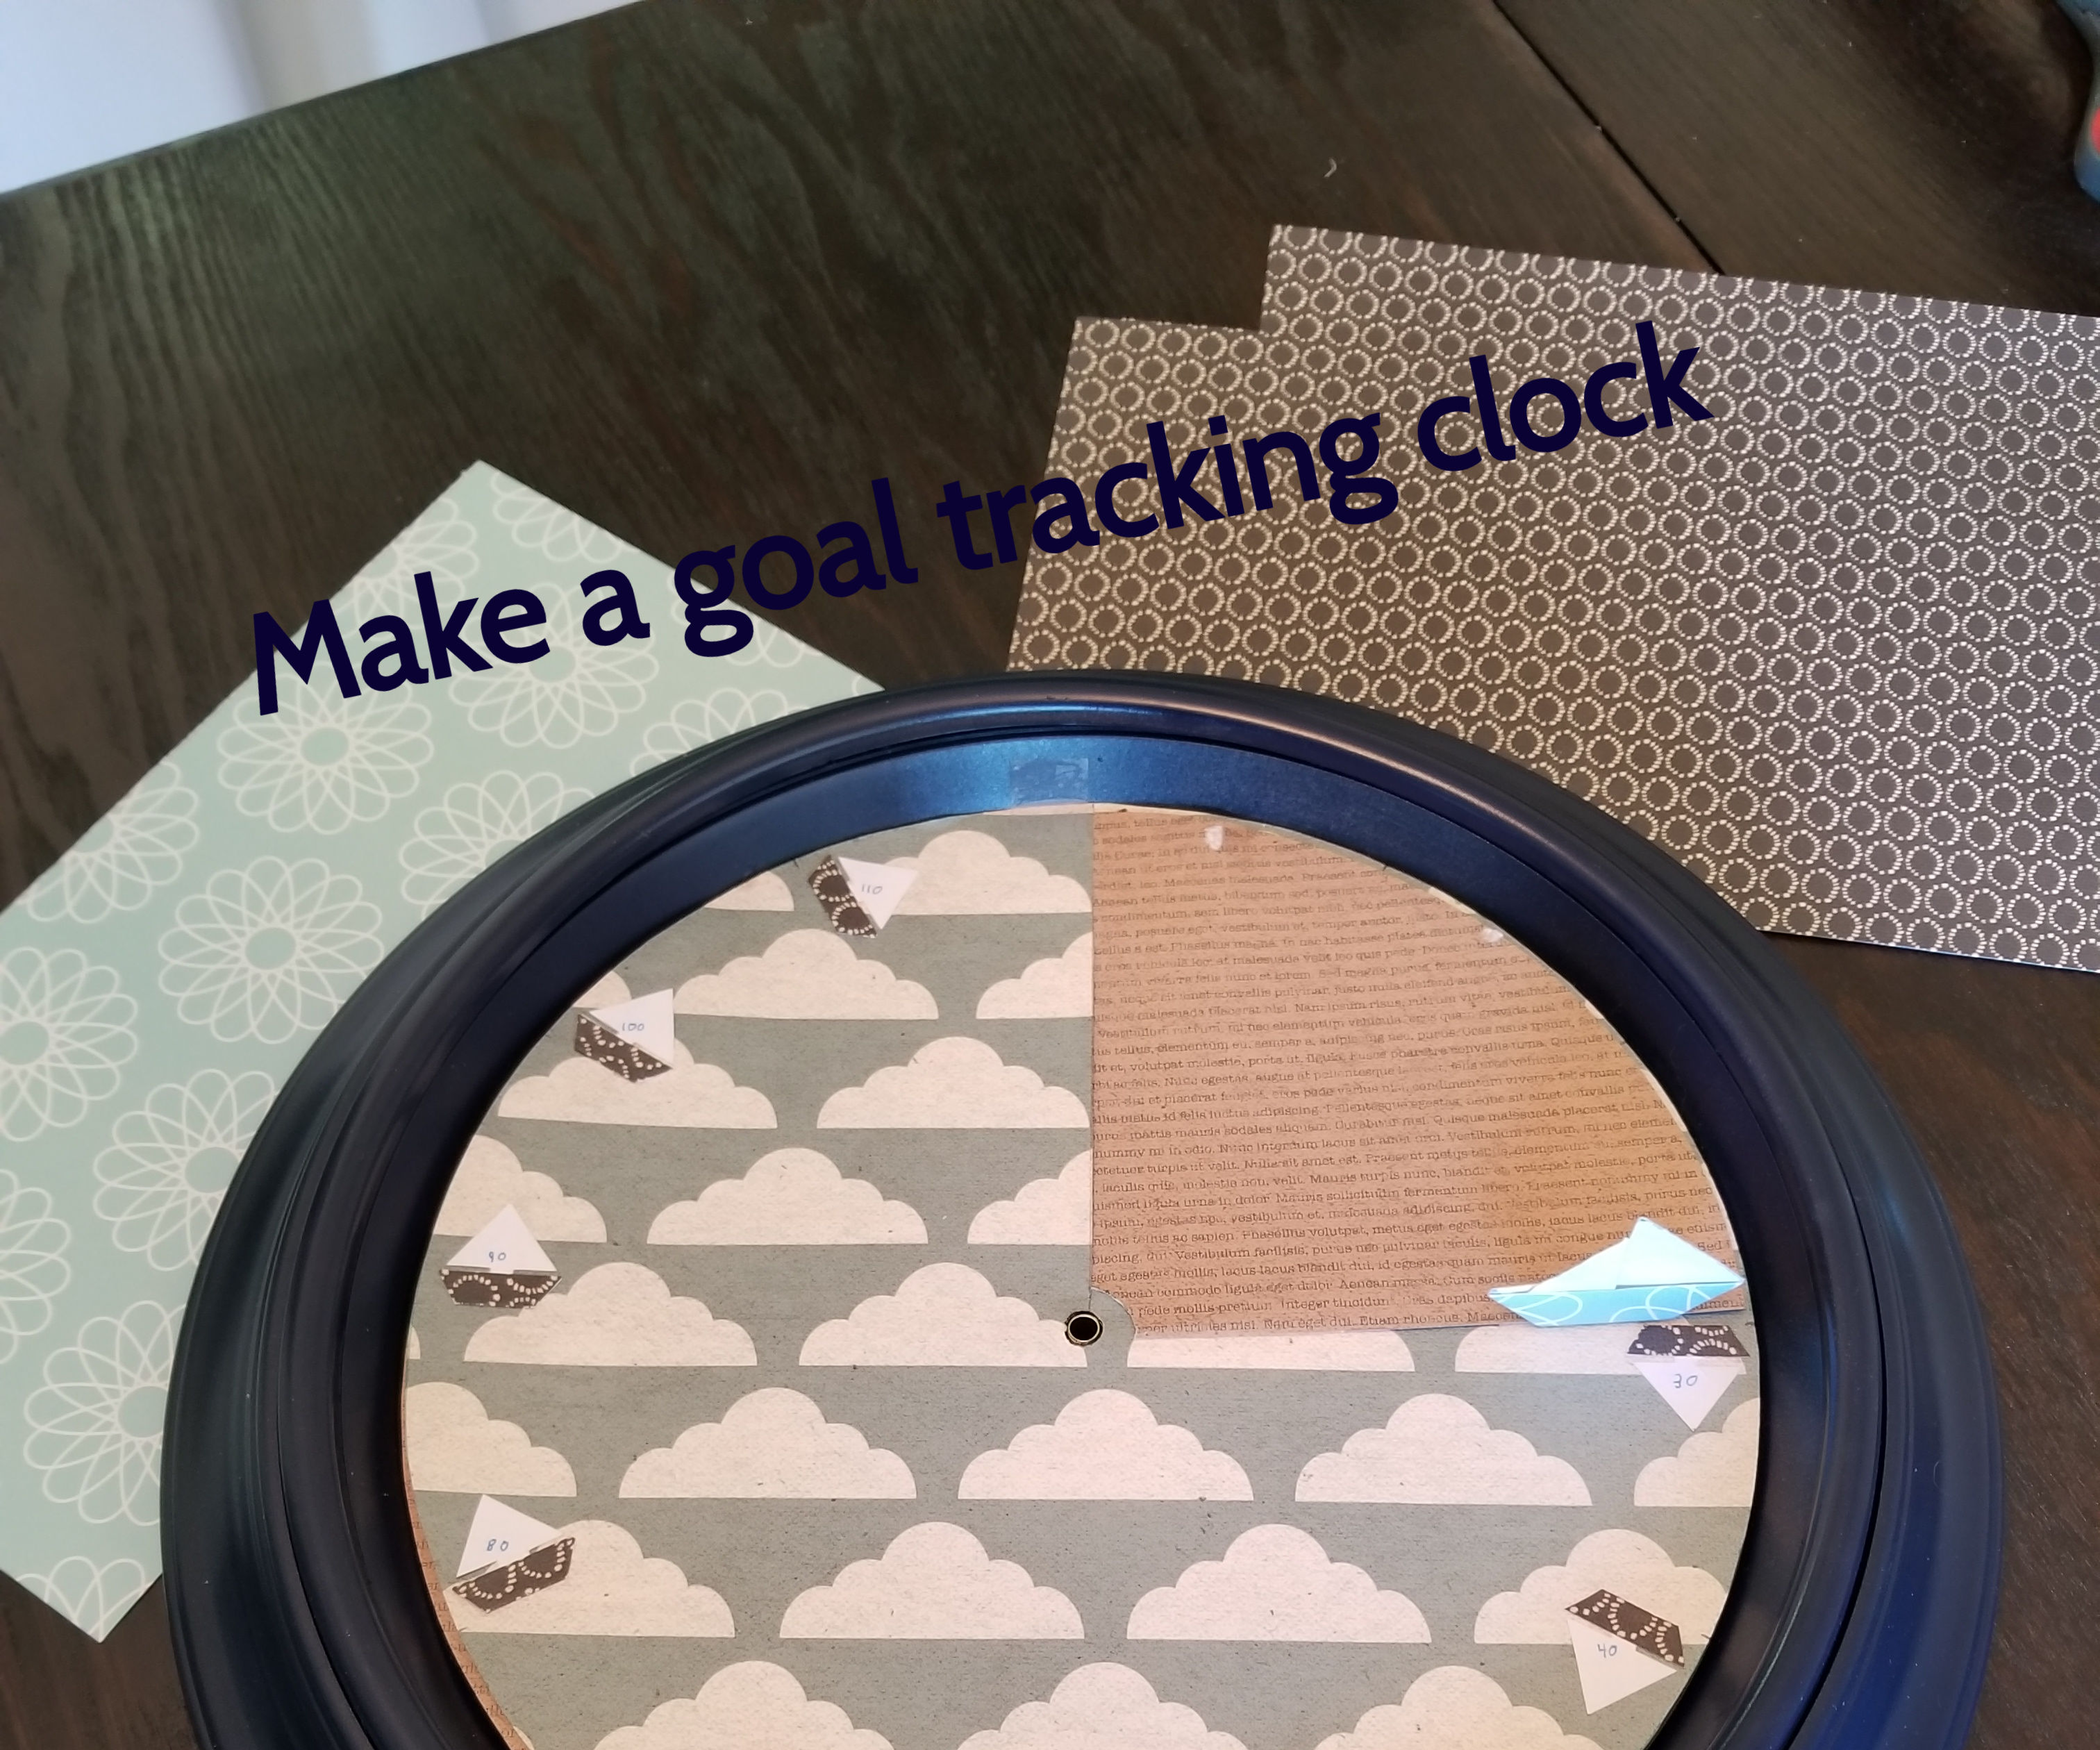 How to Make the Goal Clock for Under 10$